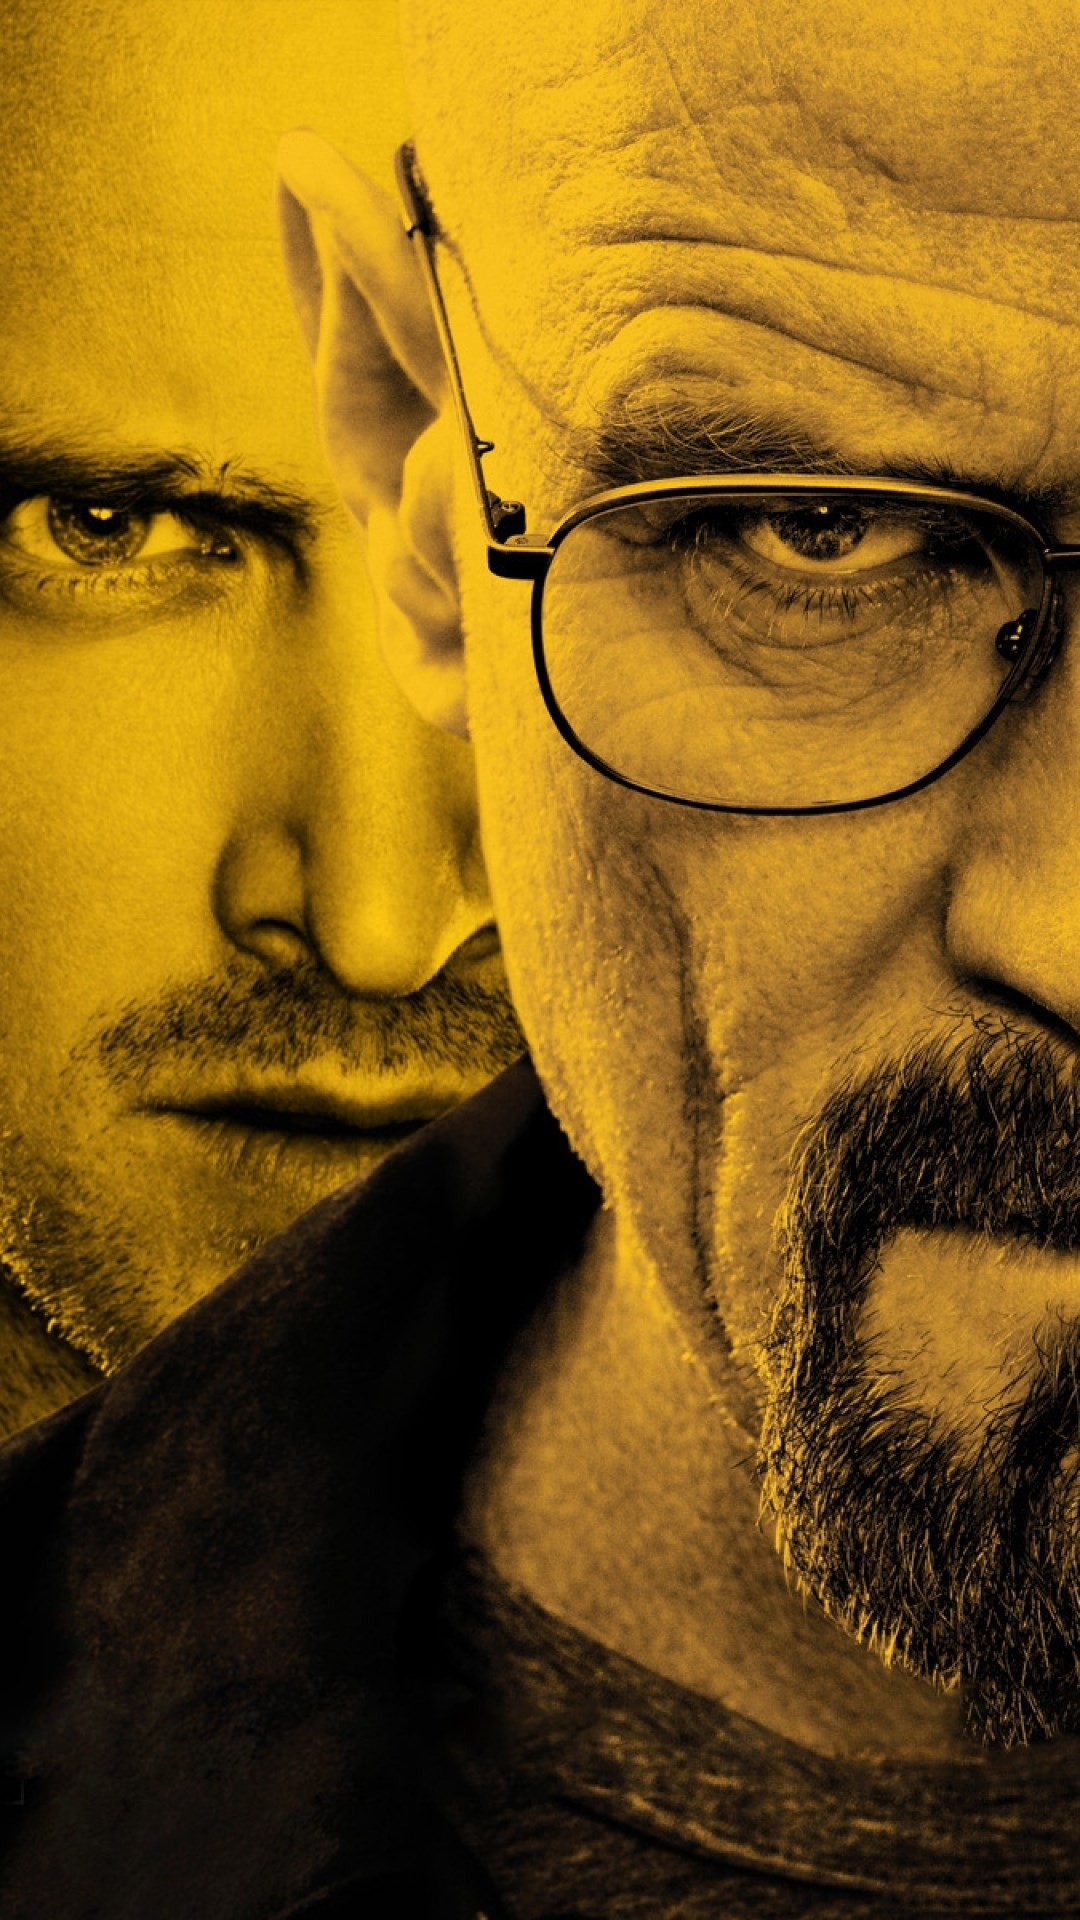 1080x1920 breaking bad wallpaper for iphone download free